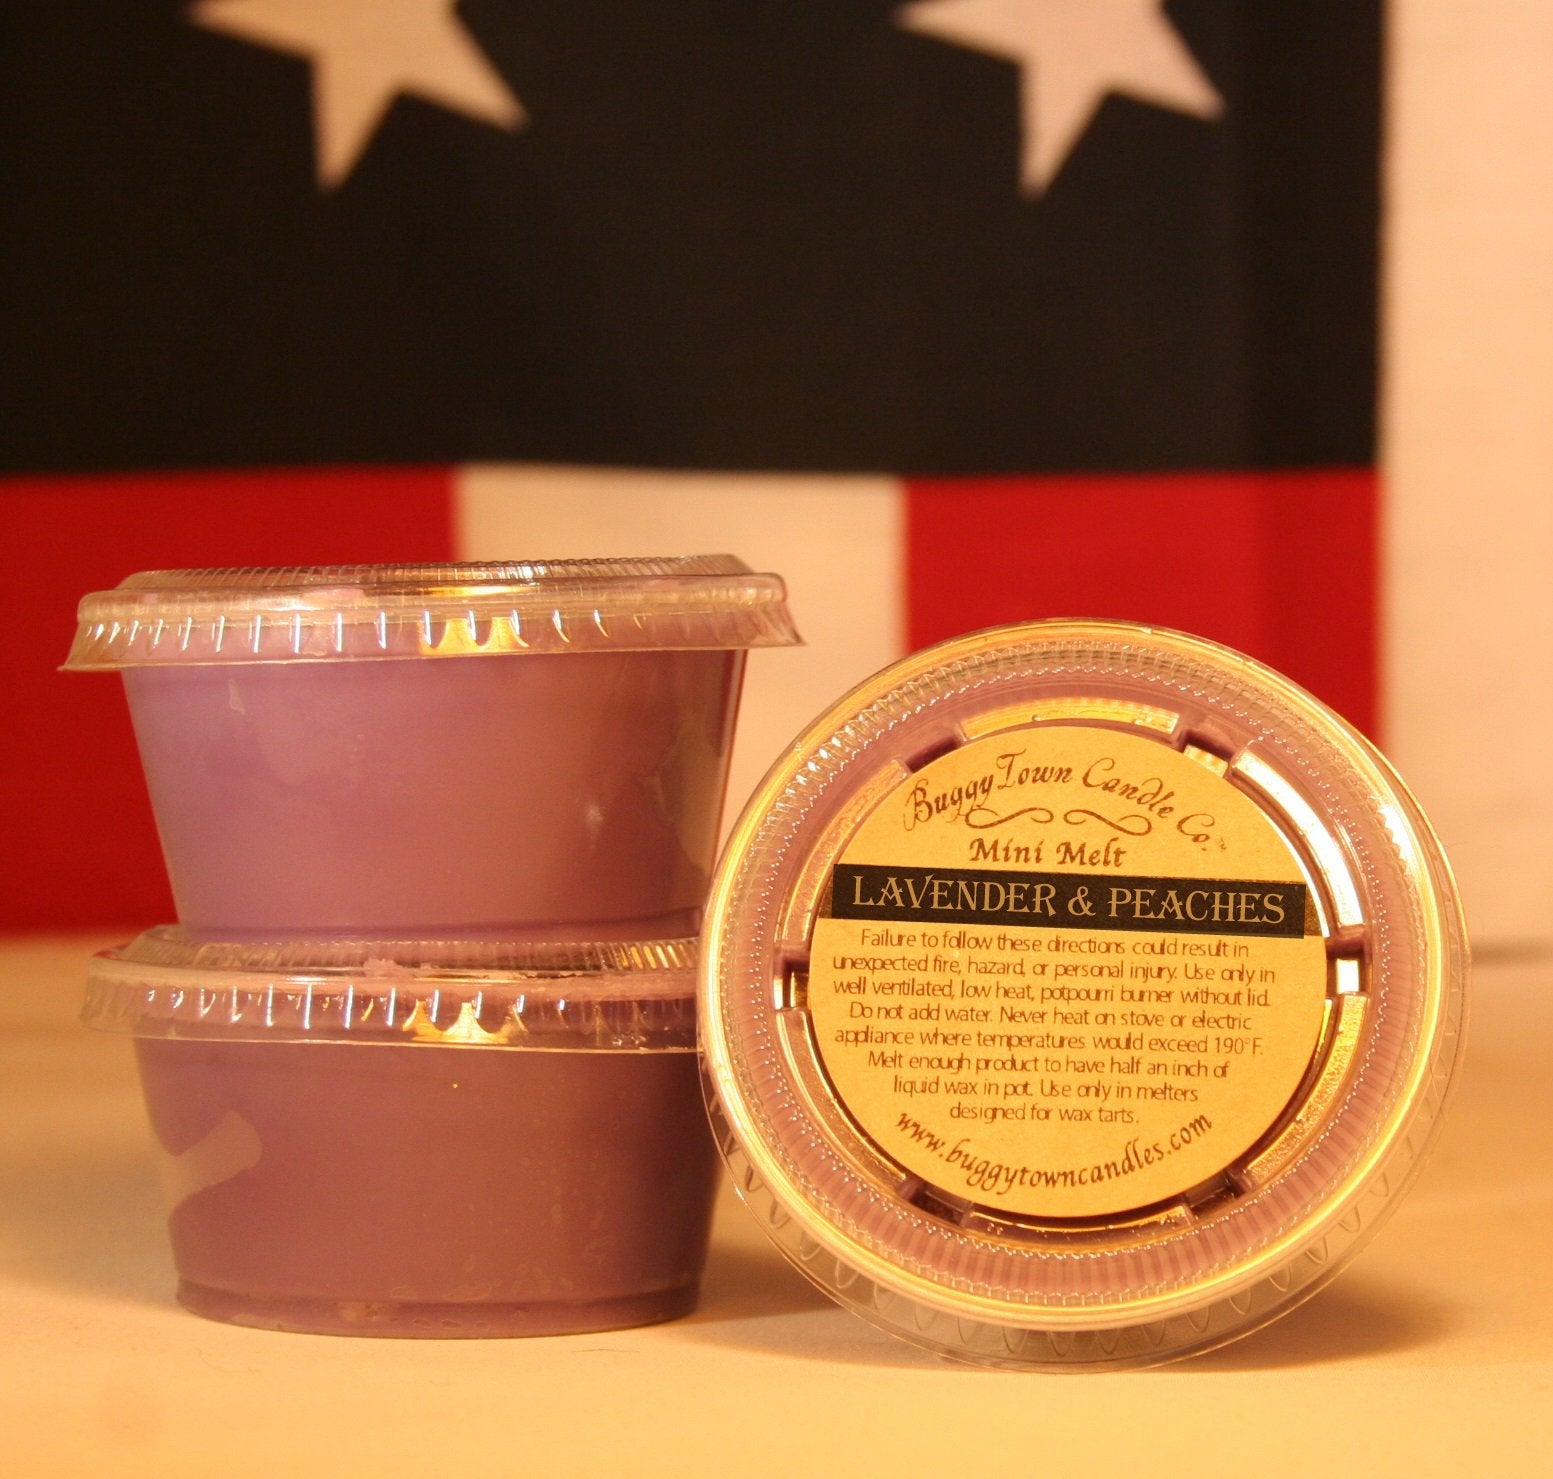 Lavender & Peaches Candles